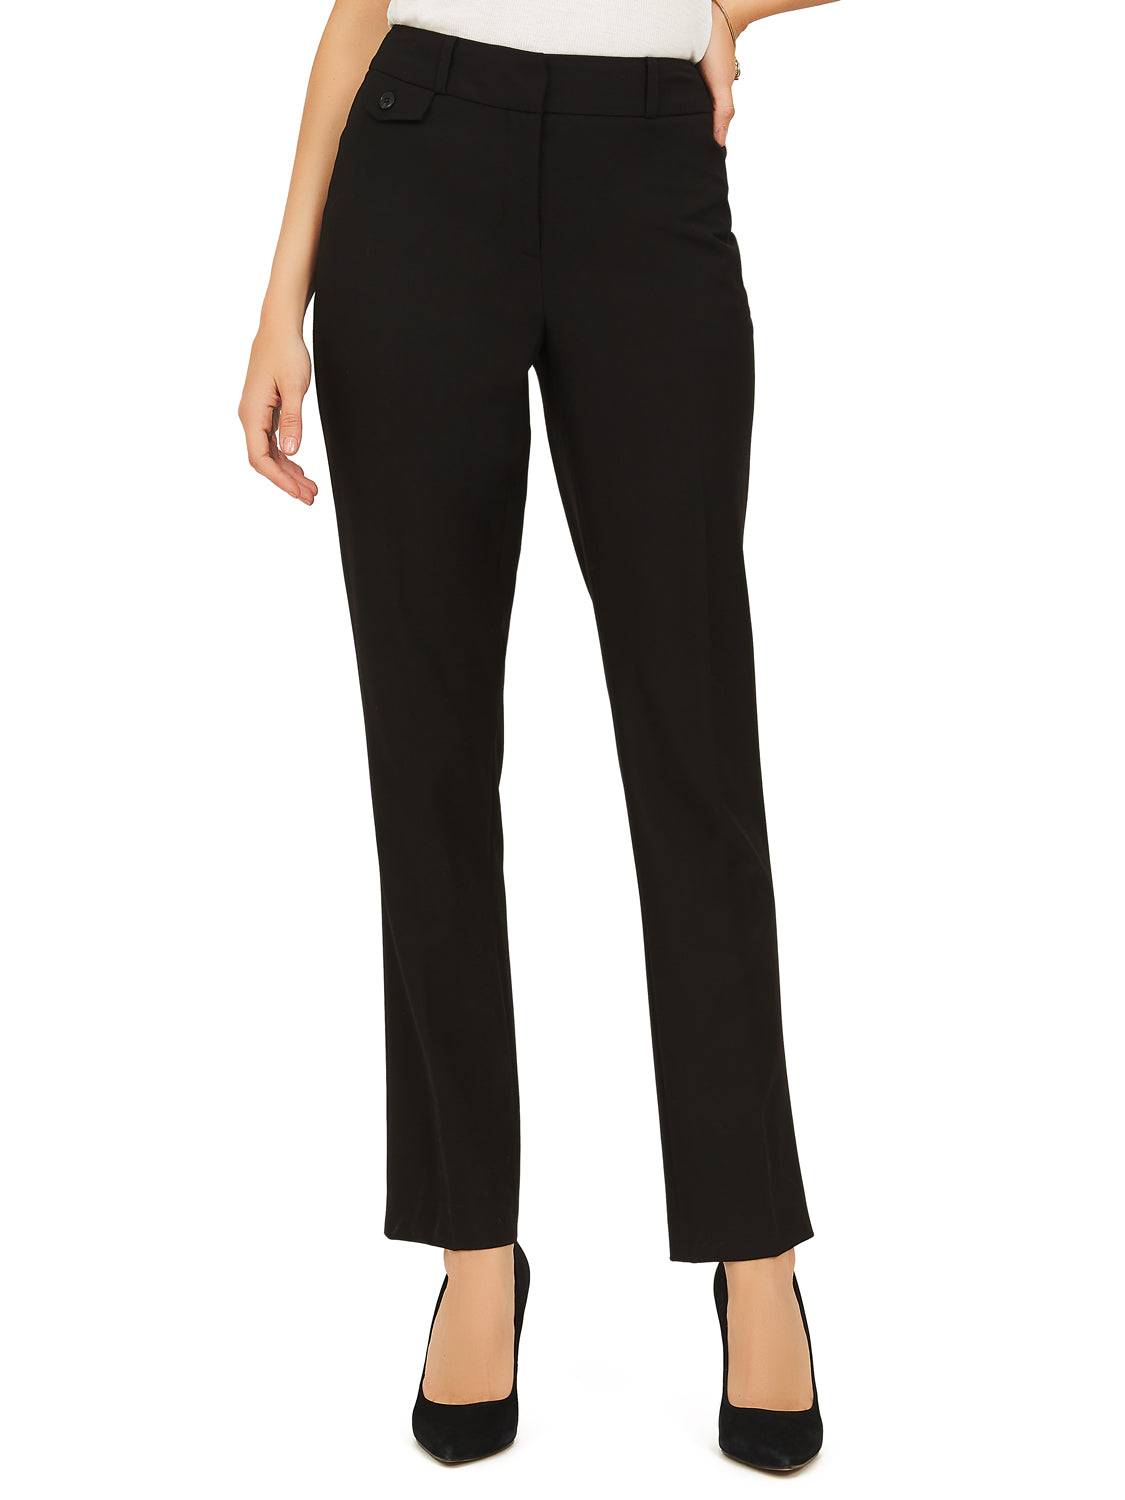 Ankle Length Straight Pants